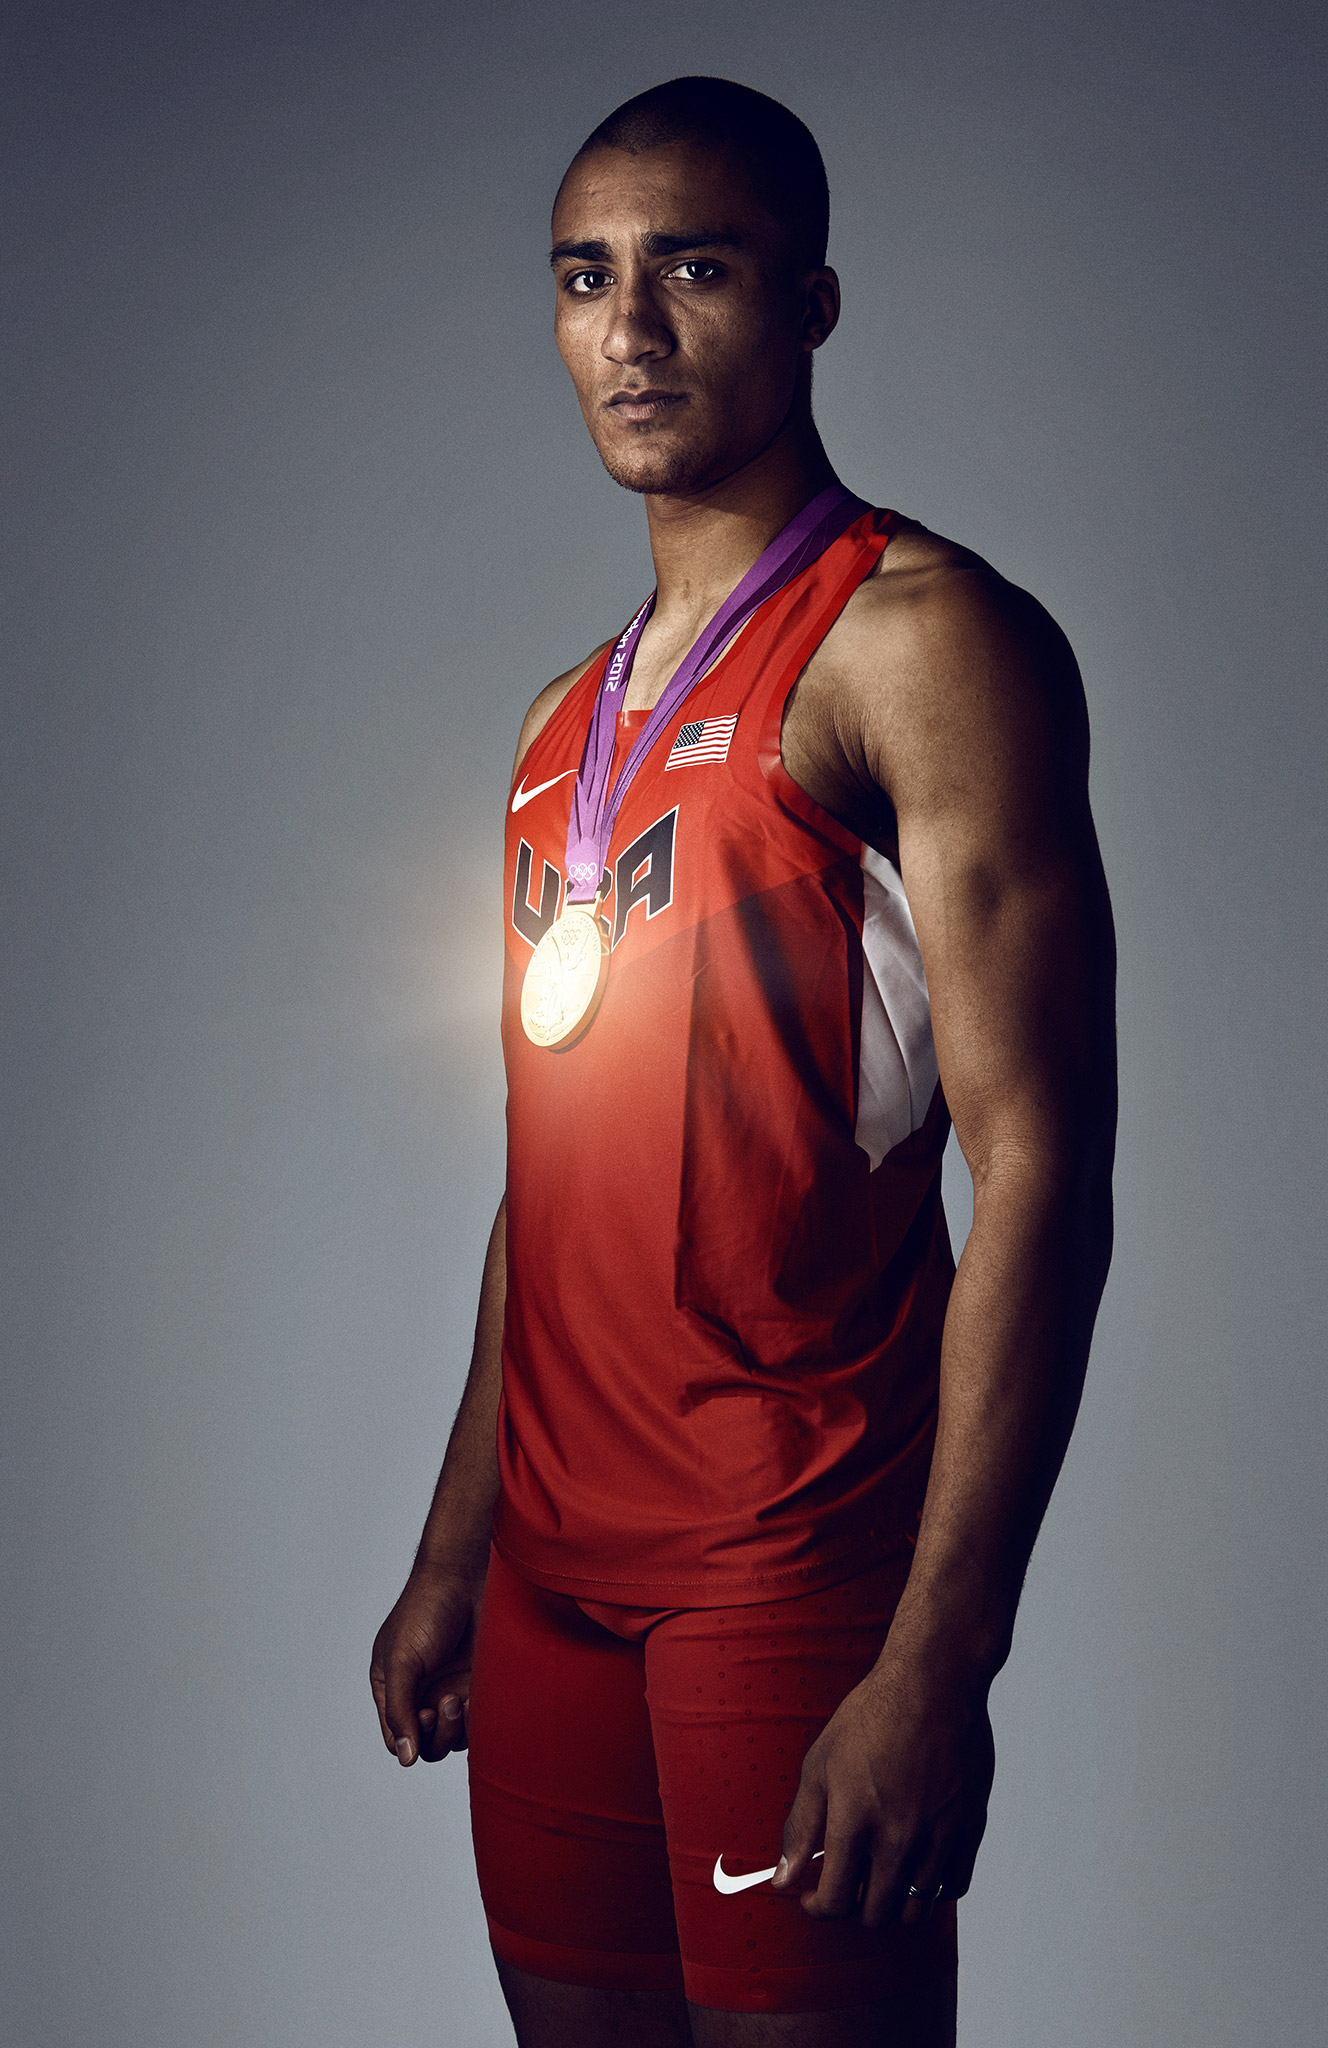 Ashton Eaton Decathlon with Gold Medal | Zach Ancell Photography